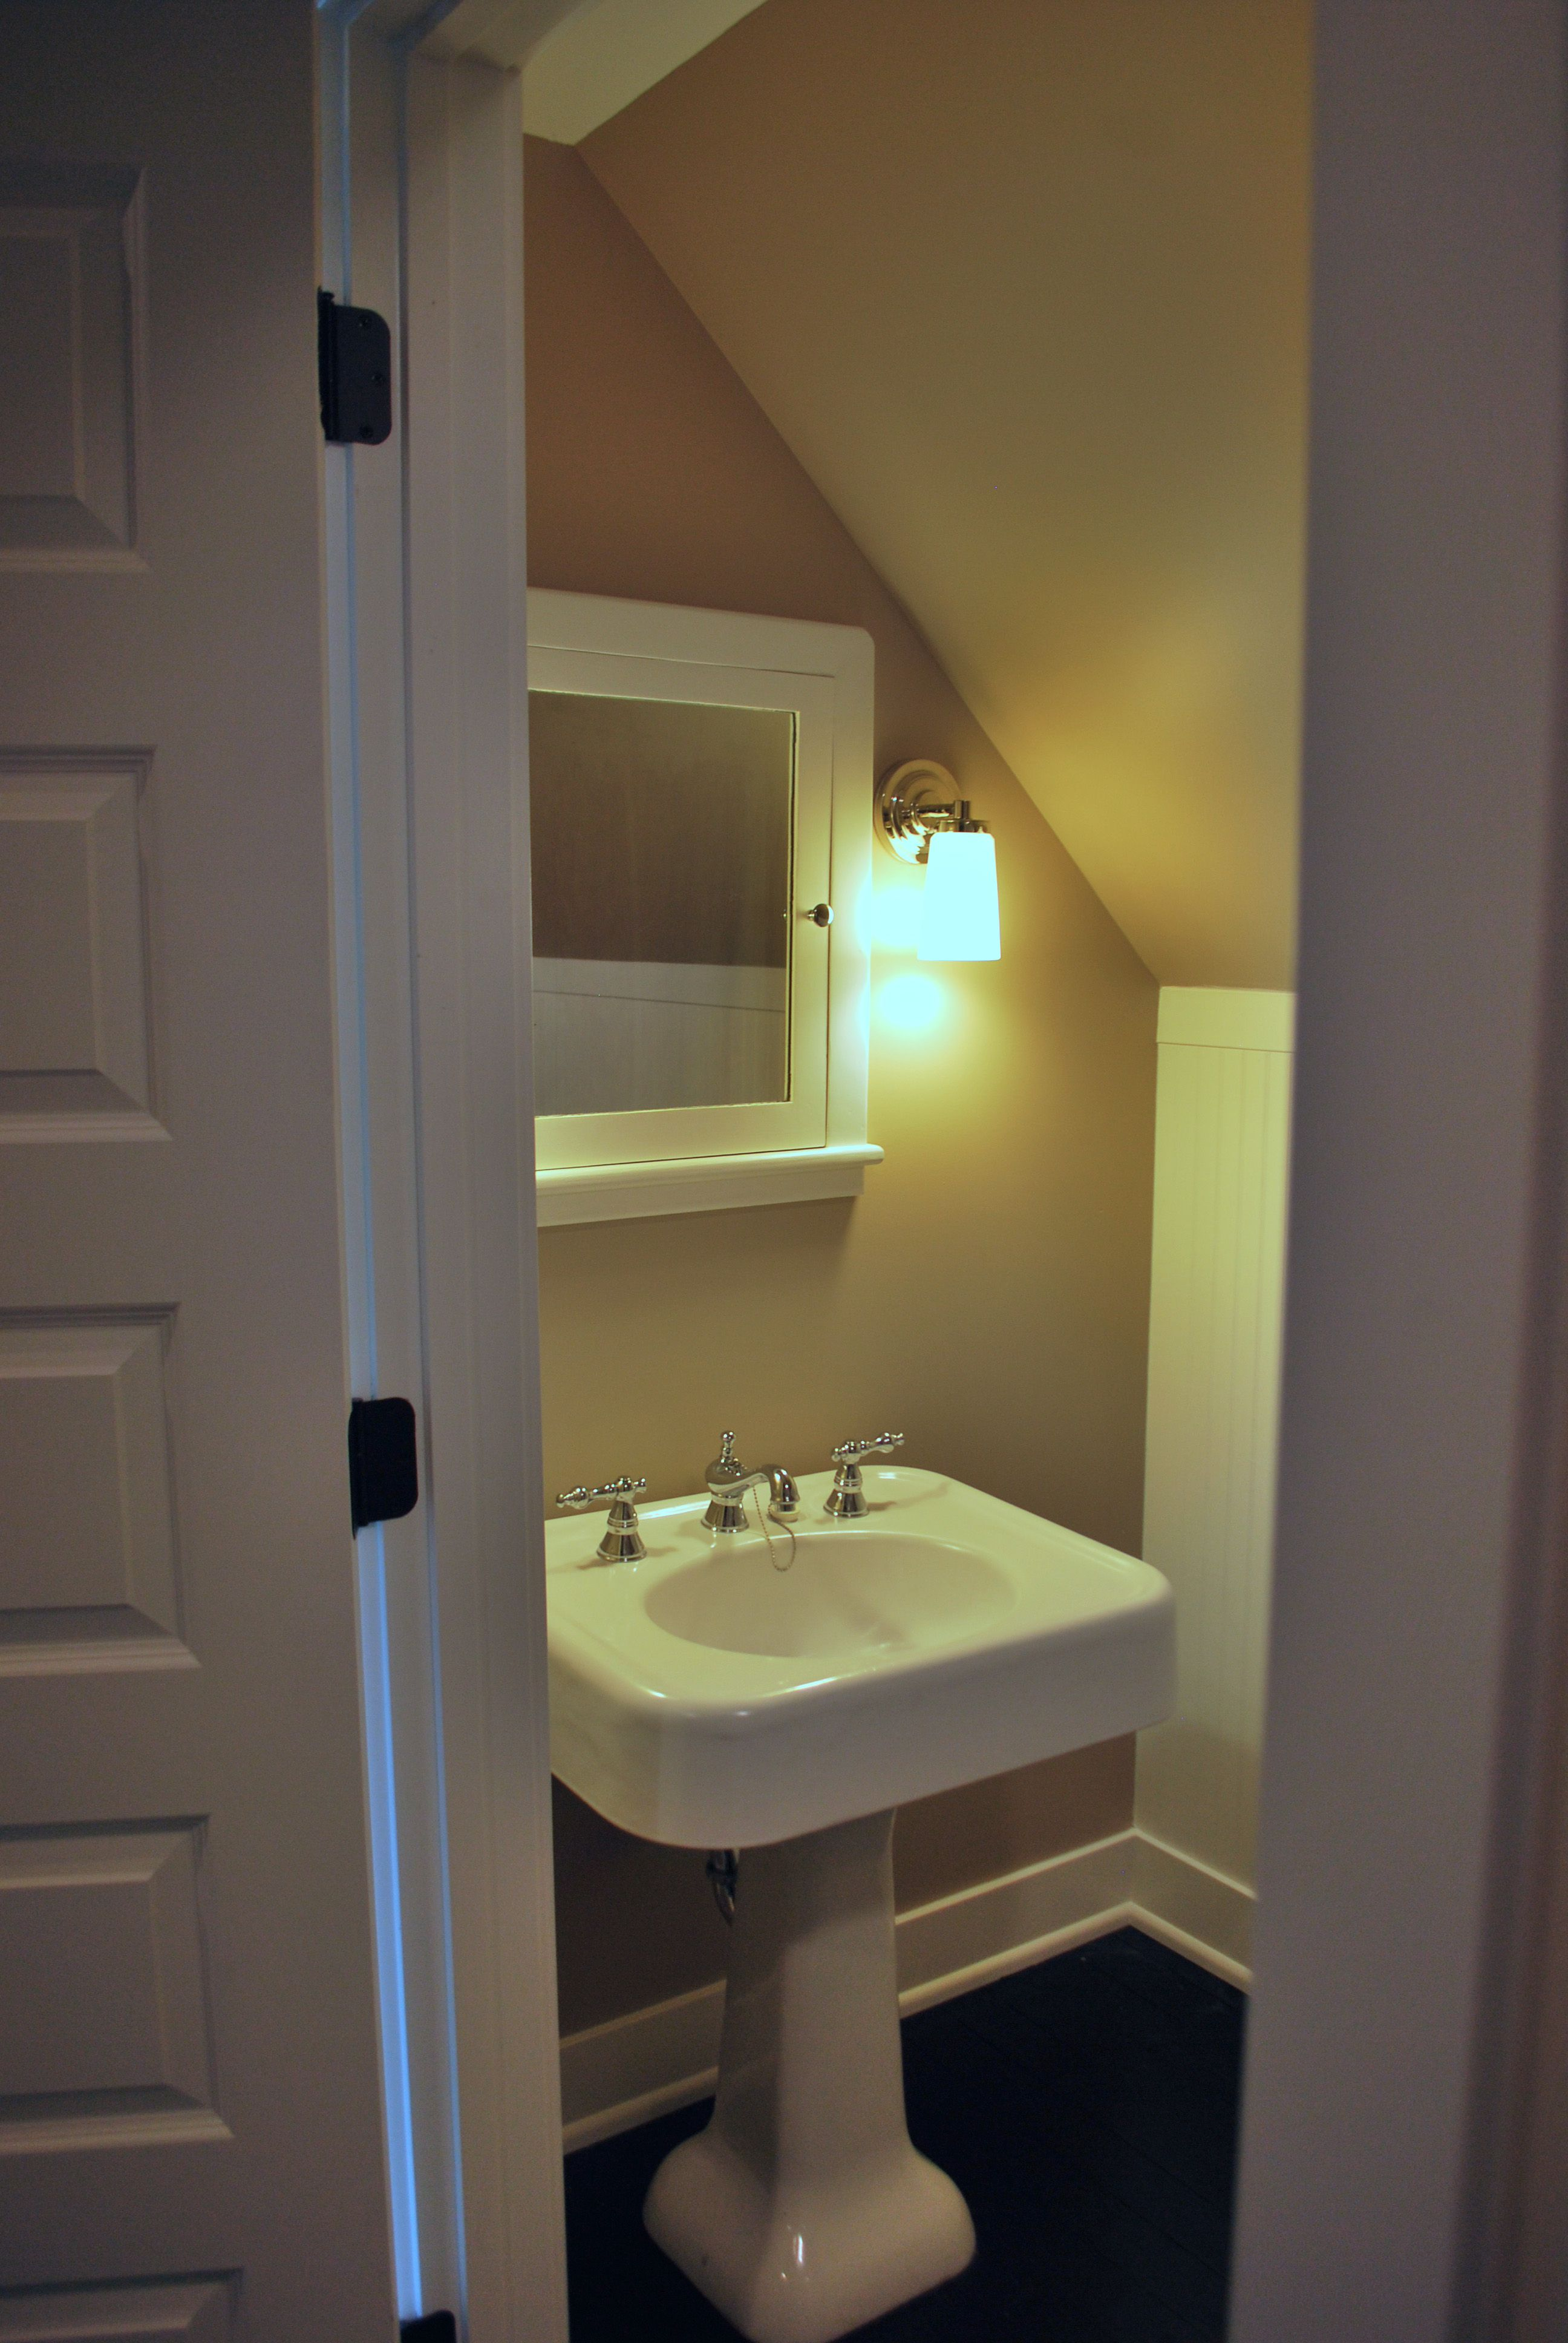 Attic bathroom designs 12 Attic Bathroom Design Ideas. Attic bathroom designs 12 Attic Bathroom Design Ideas   cape cod